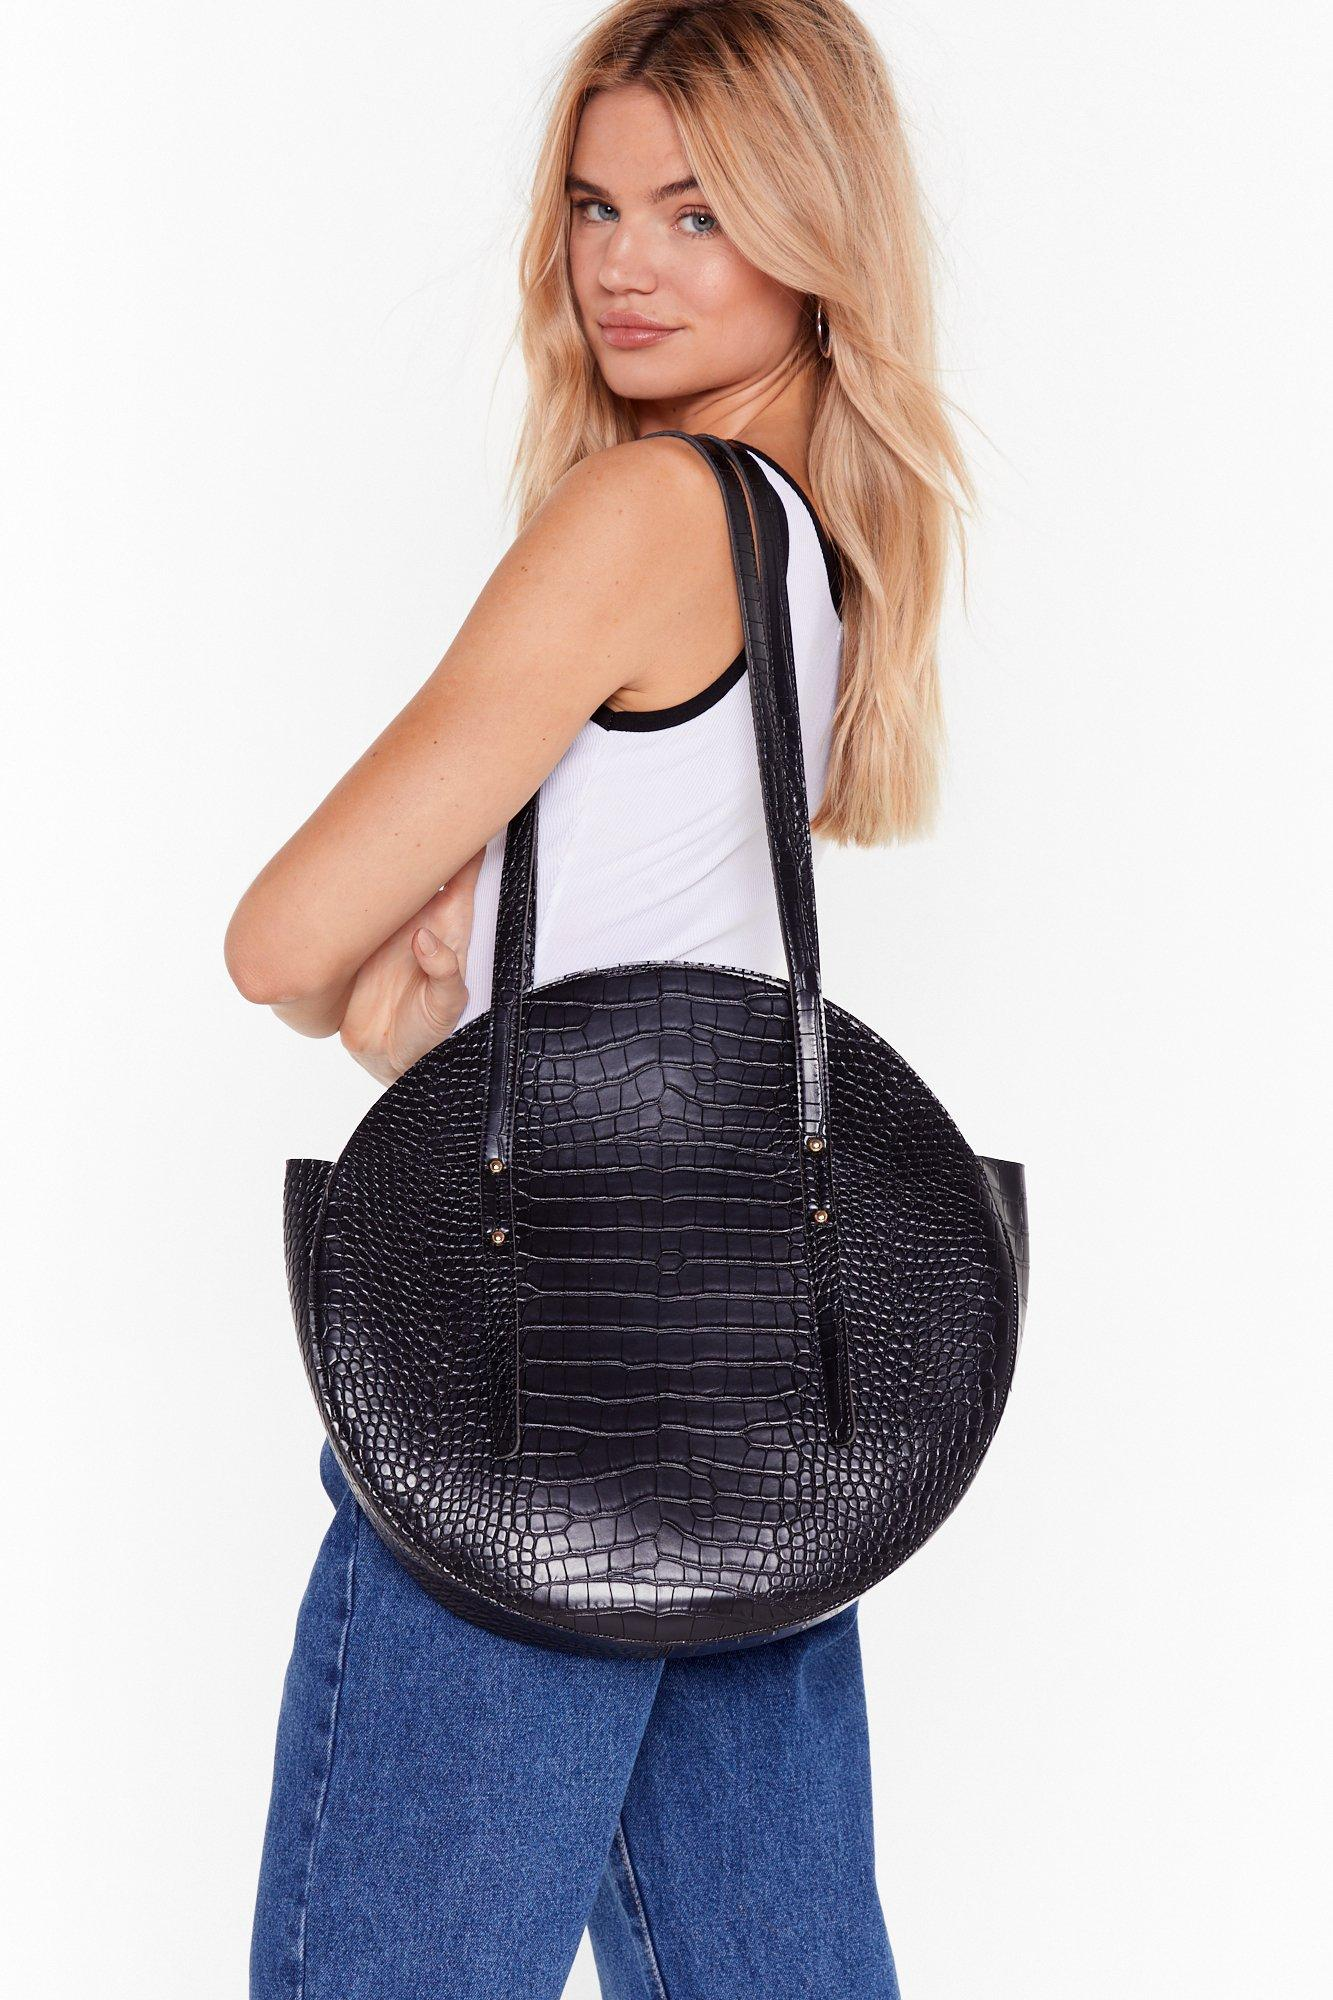 Image of WANT Goin' Round in Circles Croc Tote Bag